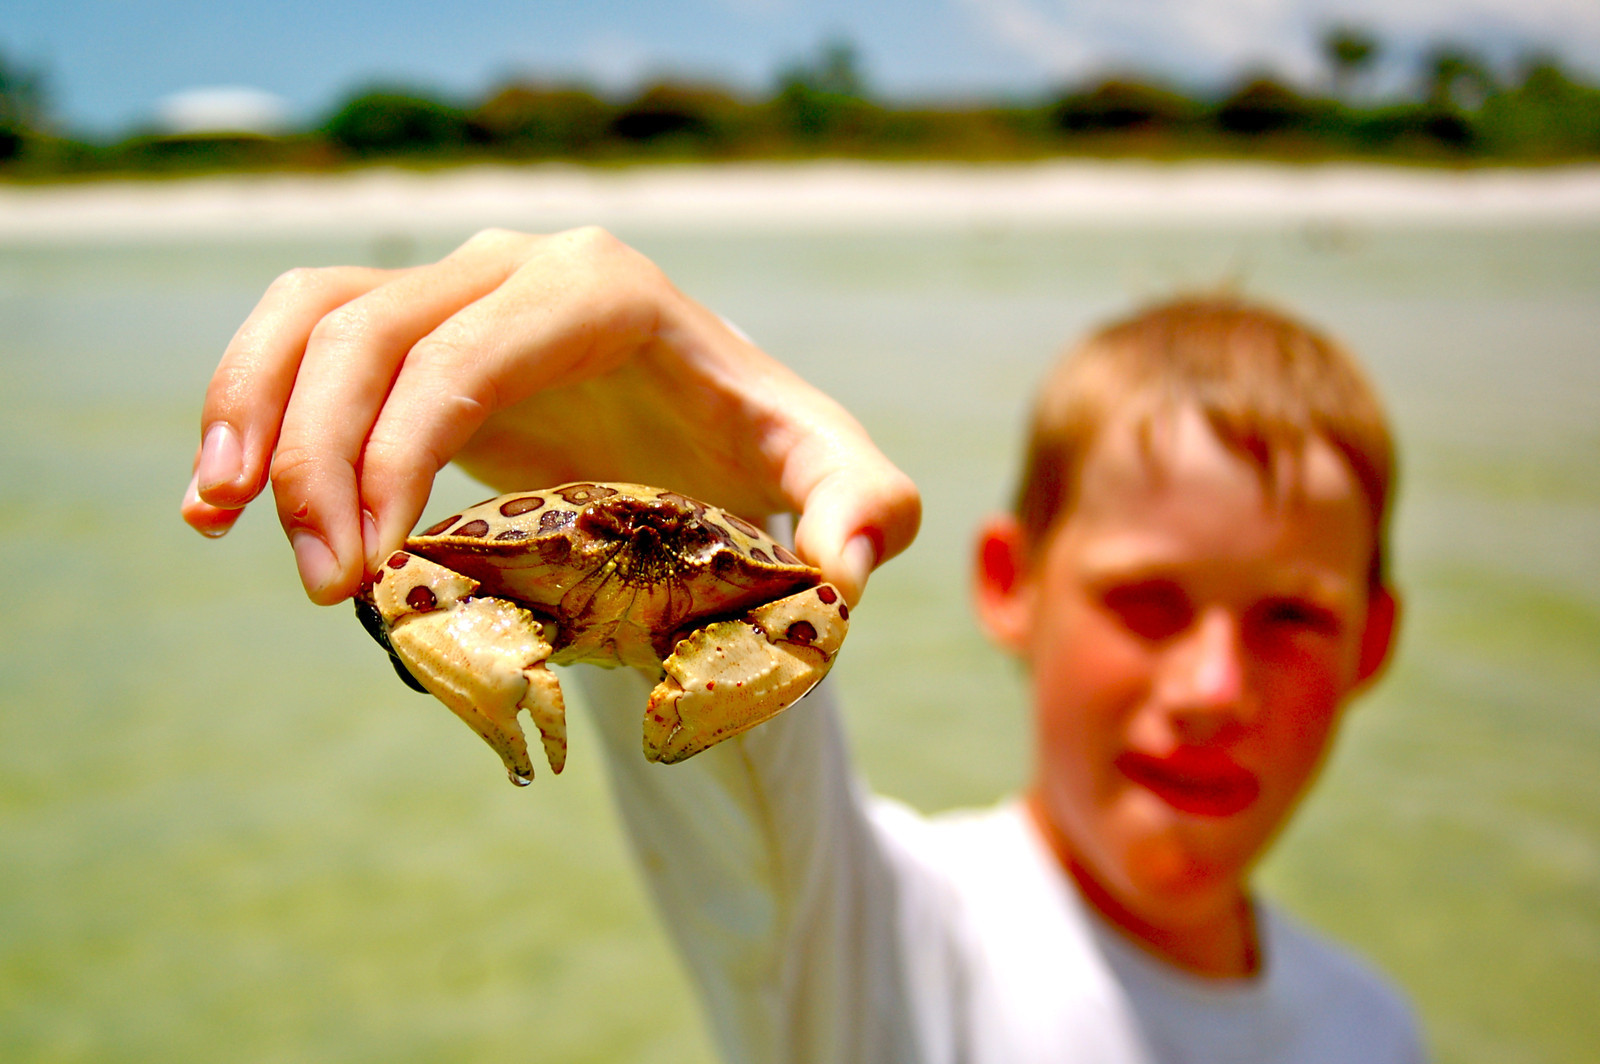 Participants in an intergenerational travel program will learn about Sanibel's fascinating creatures and ecosystems.